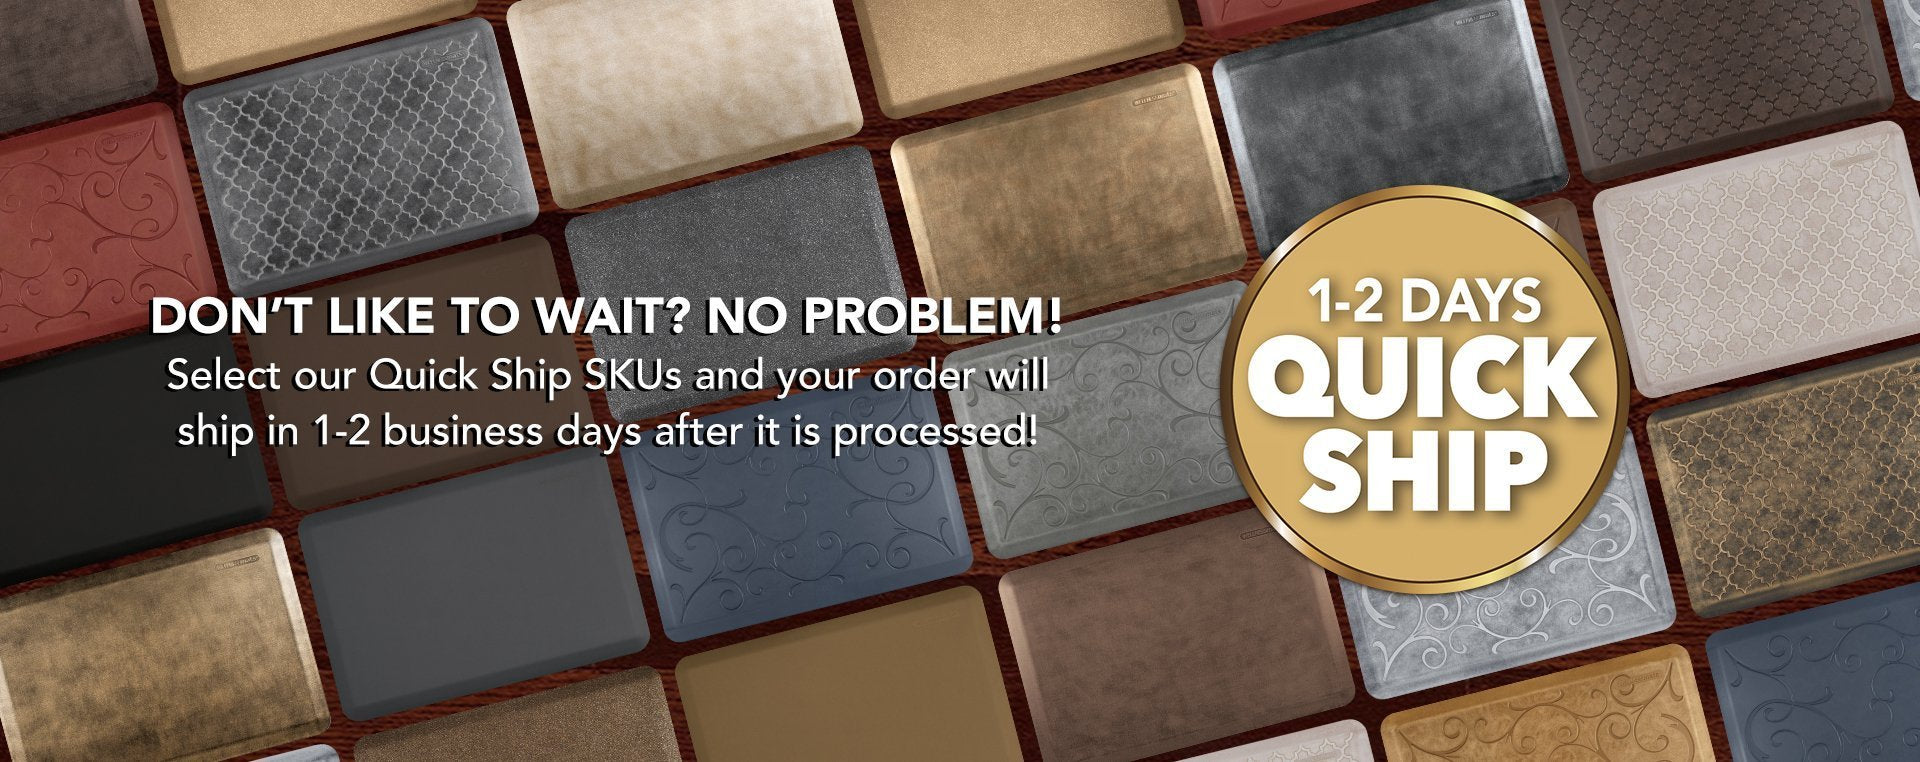 Don't like to wait? No problem! Select Quick Ship Mats